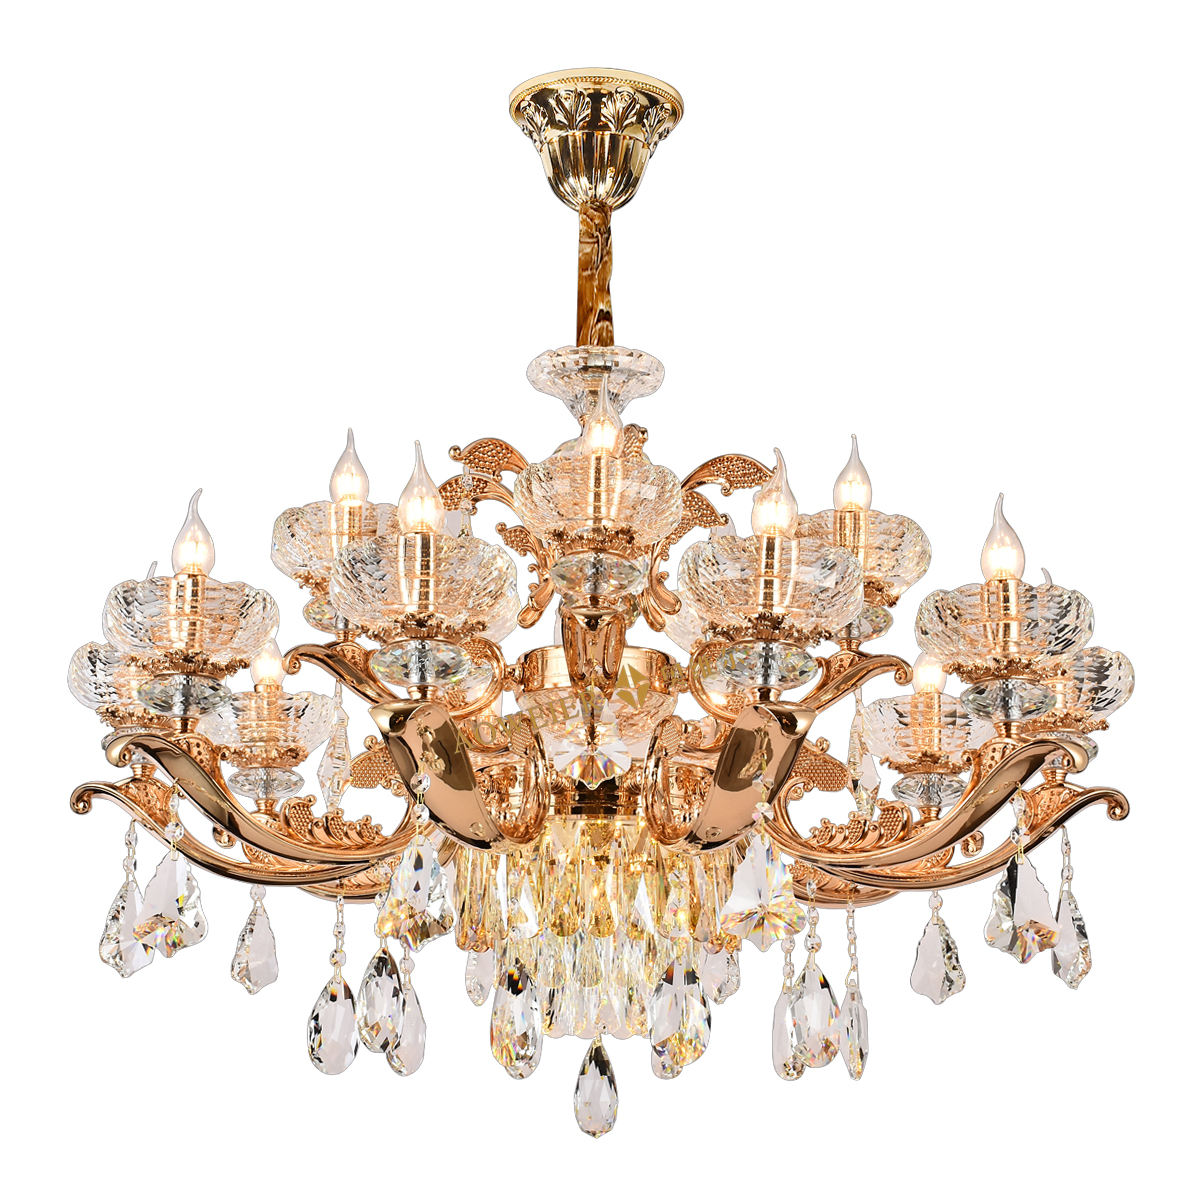 Zhongshan Wholesale LED Ceiling Lights K9 Crystal Pendant Chandelier